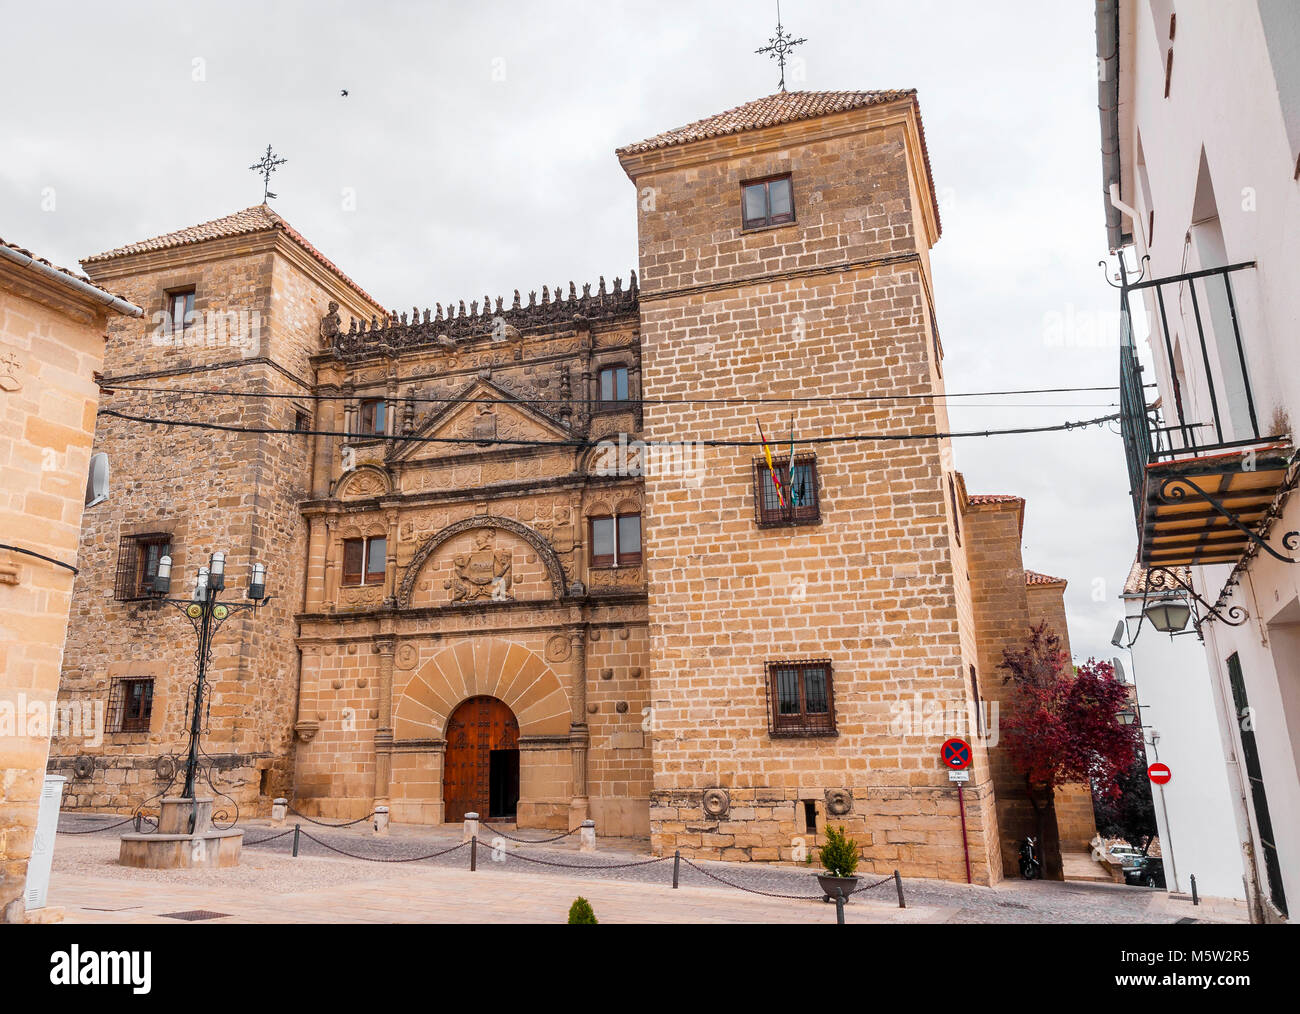 Casa De Las Torres High Resolution Stock Photography And Images Alamy